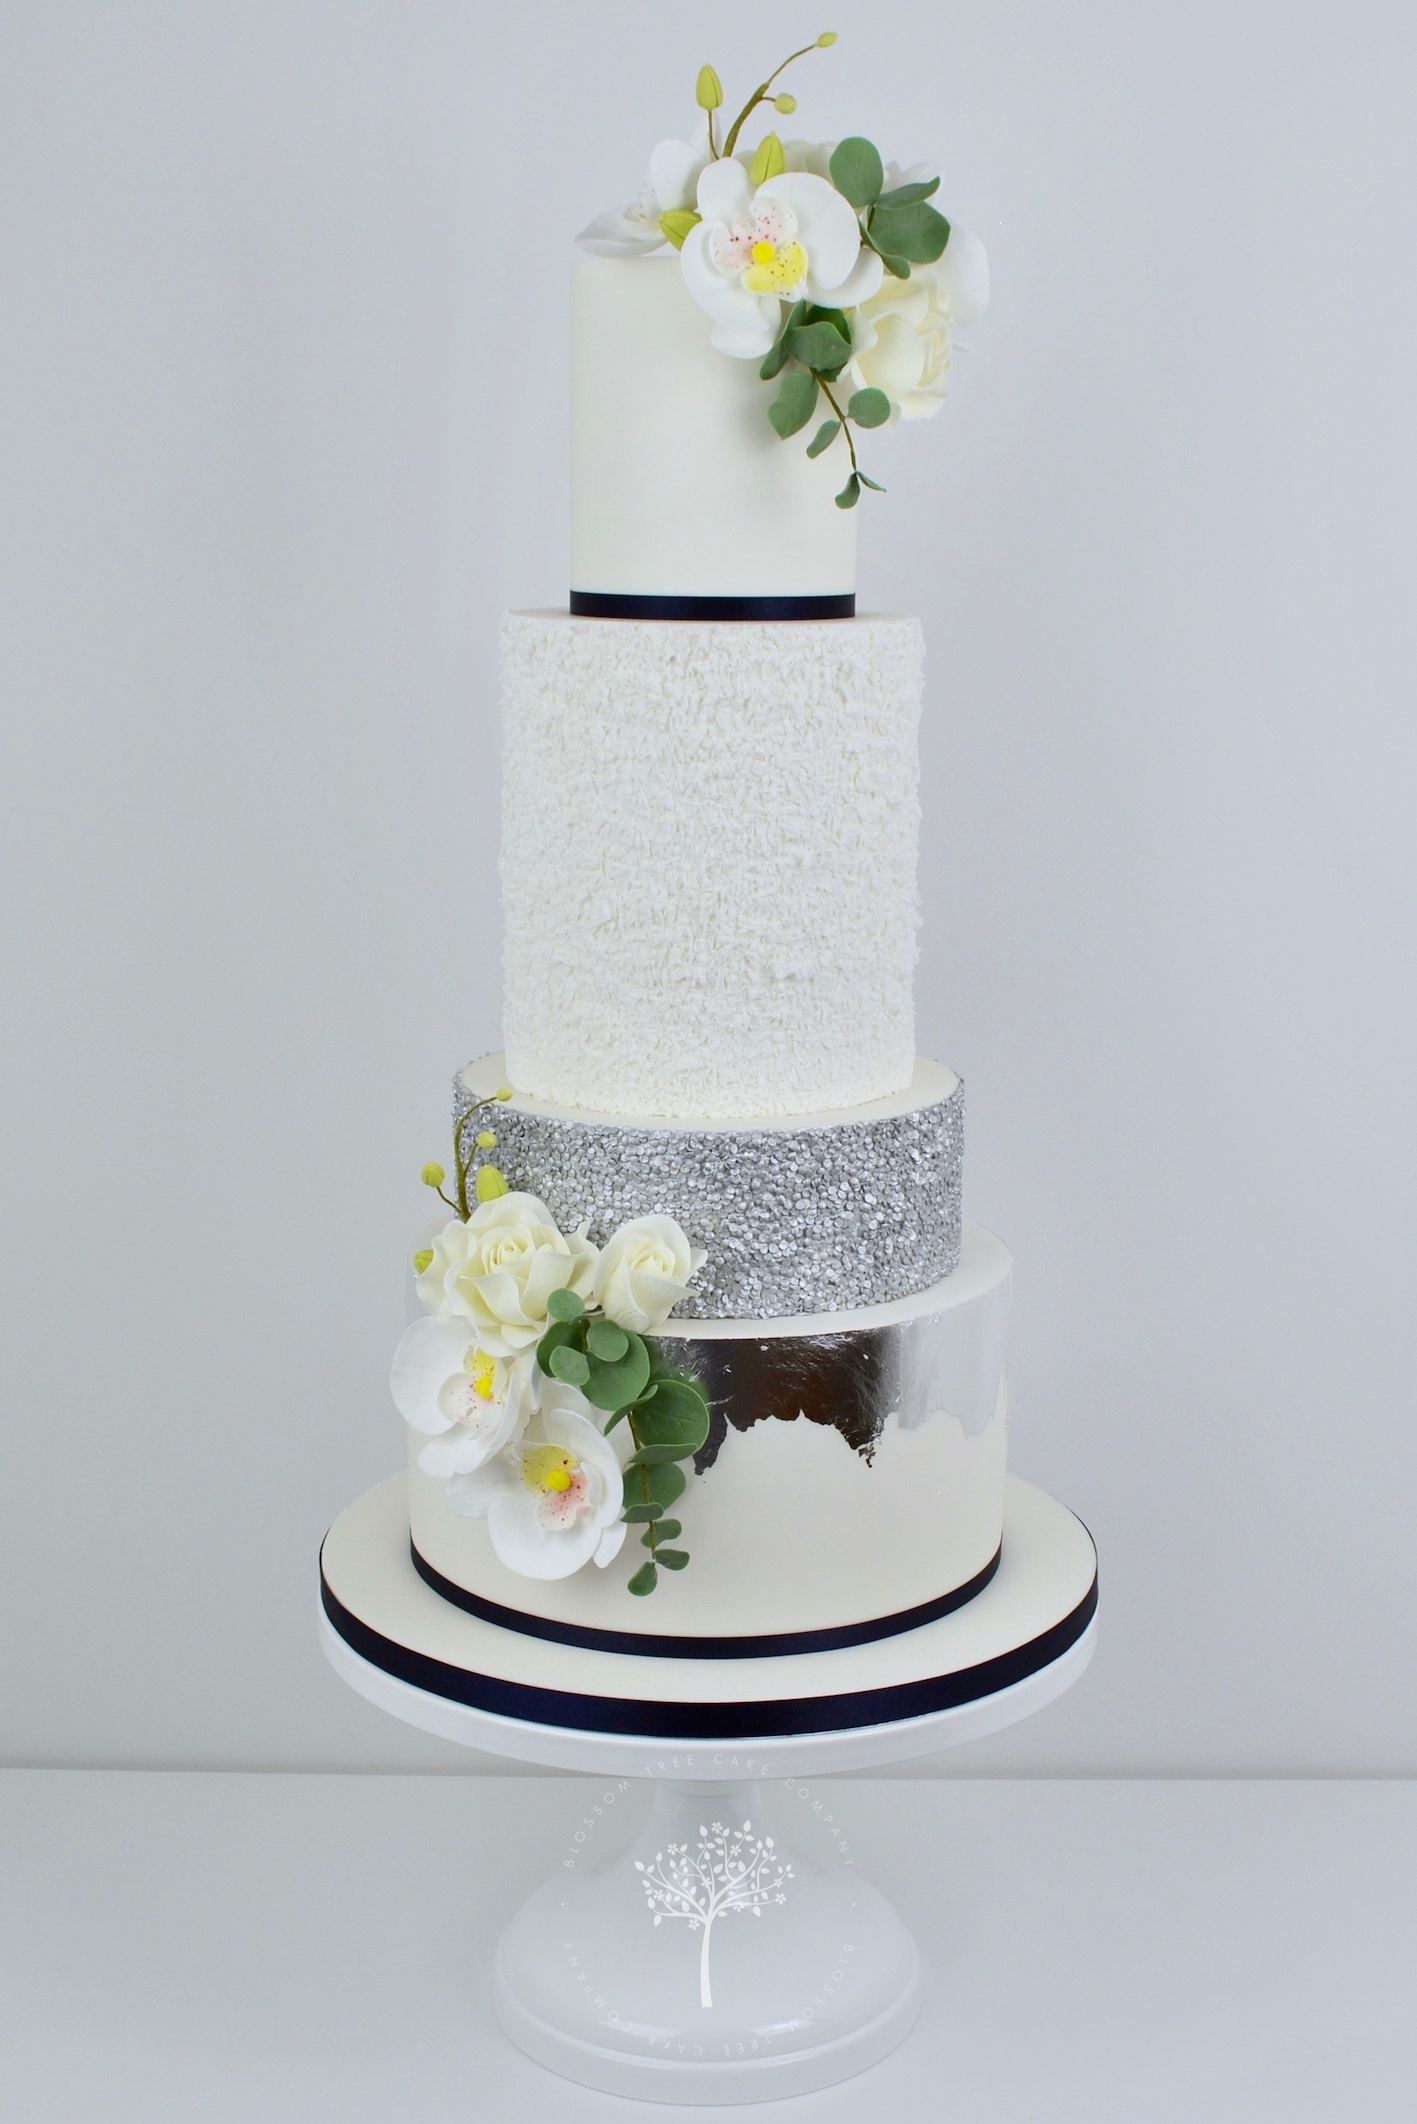 Silver Orchids wedding cake by Blossom Tree Cake Company Harrogate North Yorkshire.jpg